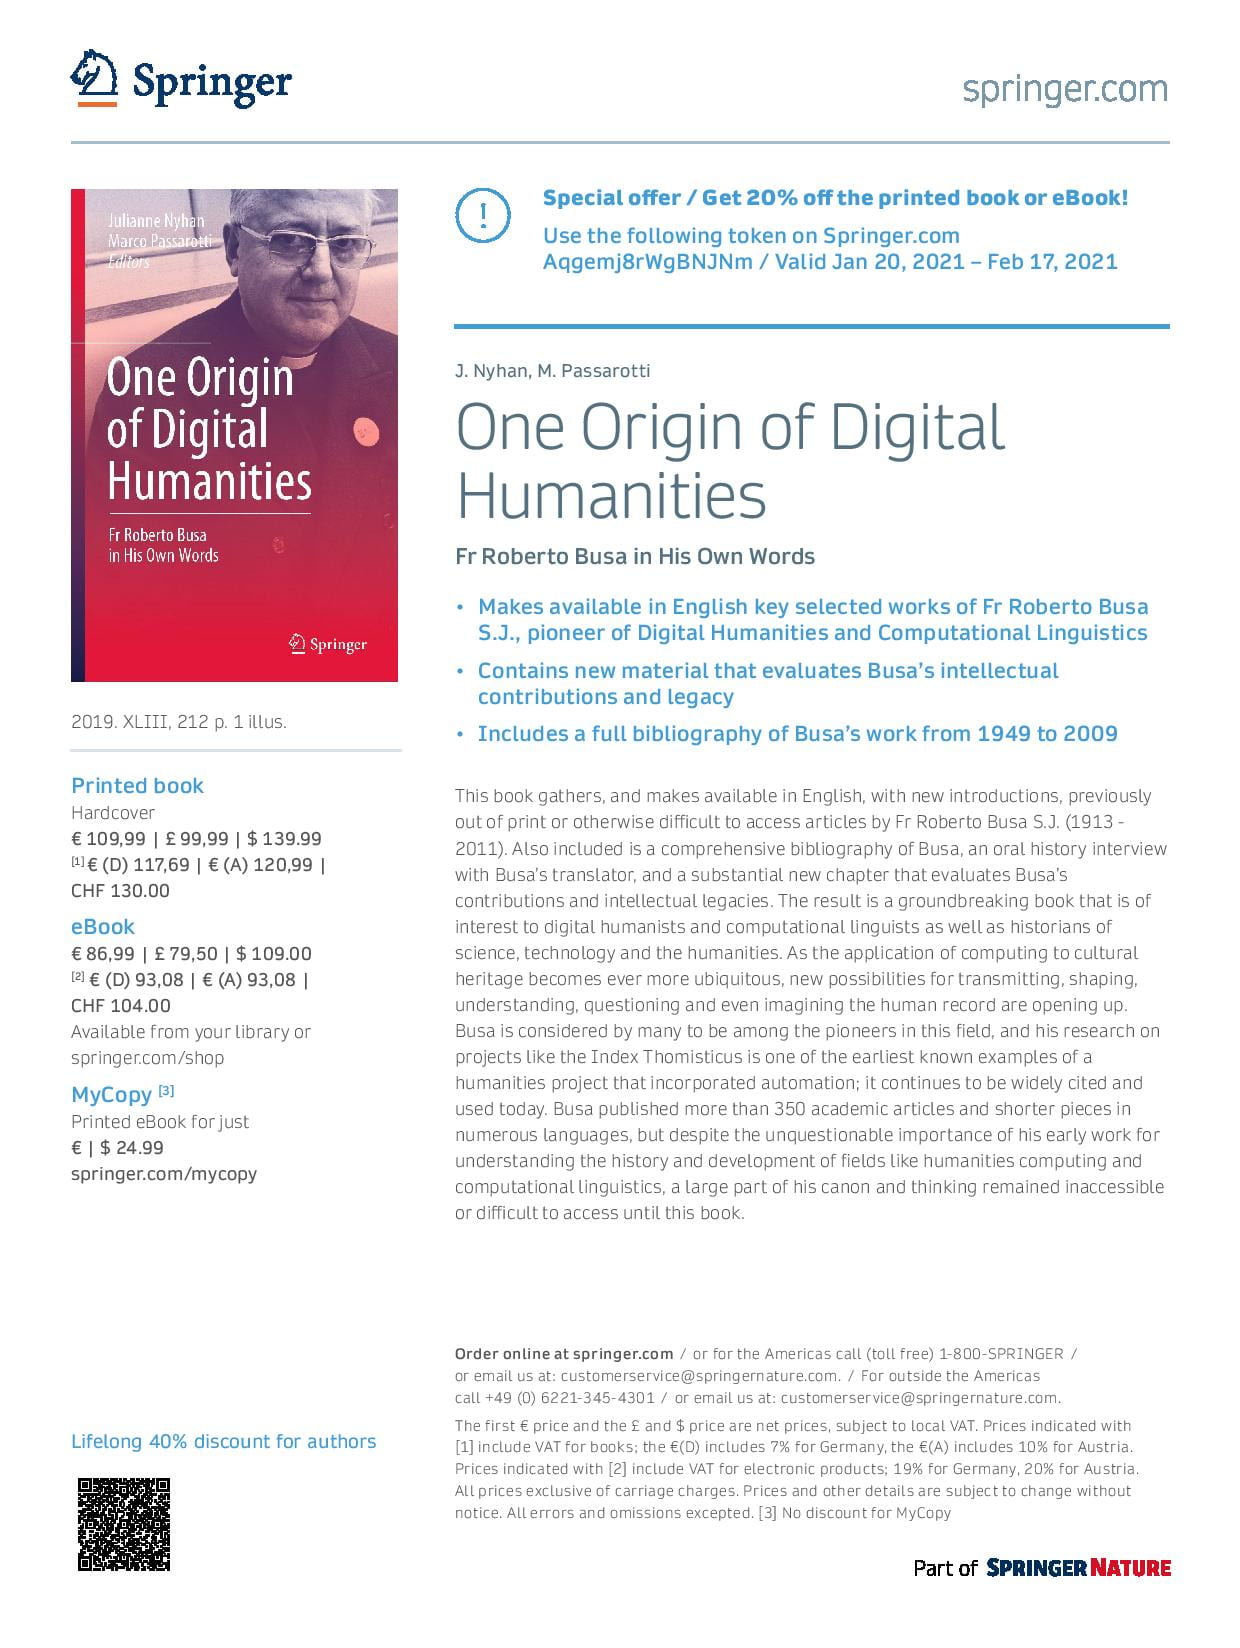 20% discount flyer 'One origin of DH'